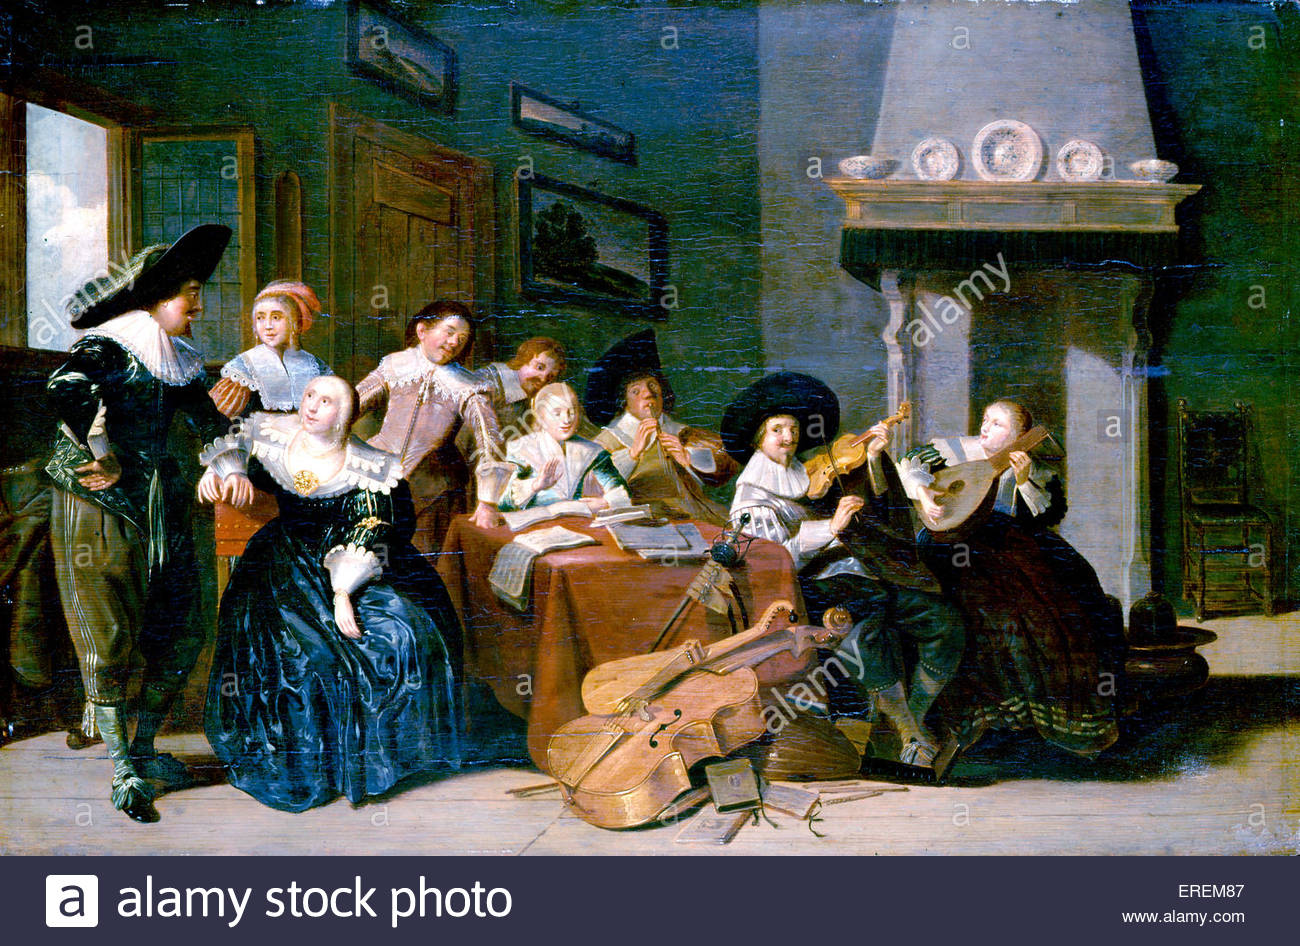 Musical Party by Pieter Codde (1599 – 1678), Dutch painter of genre works, guardroom scenes and portraits. - Stock Image